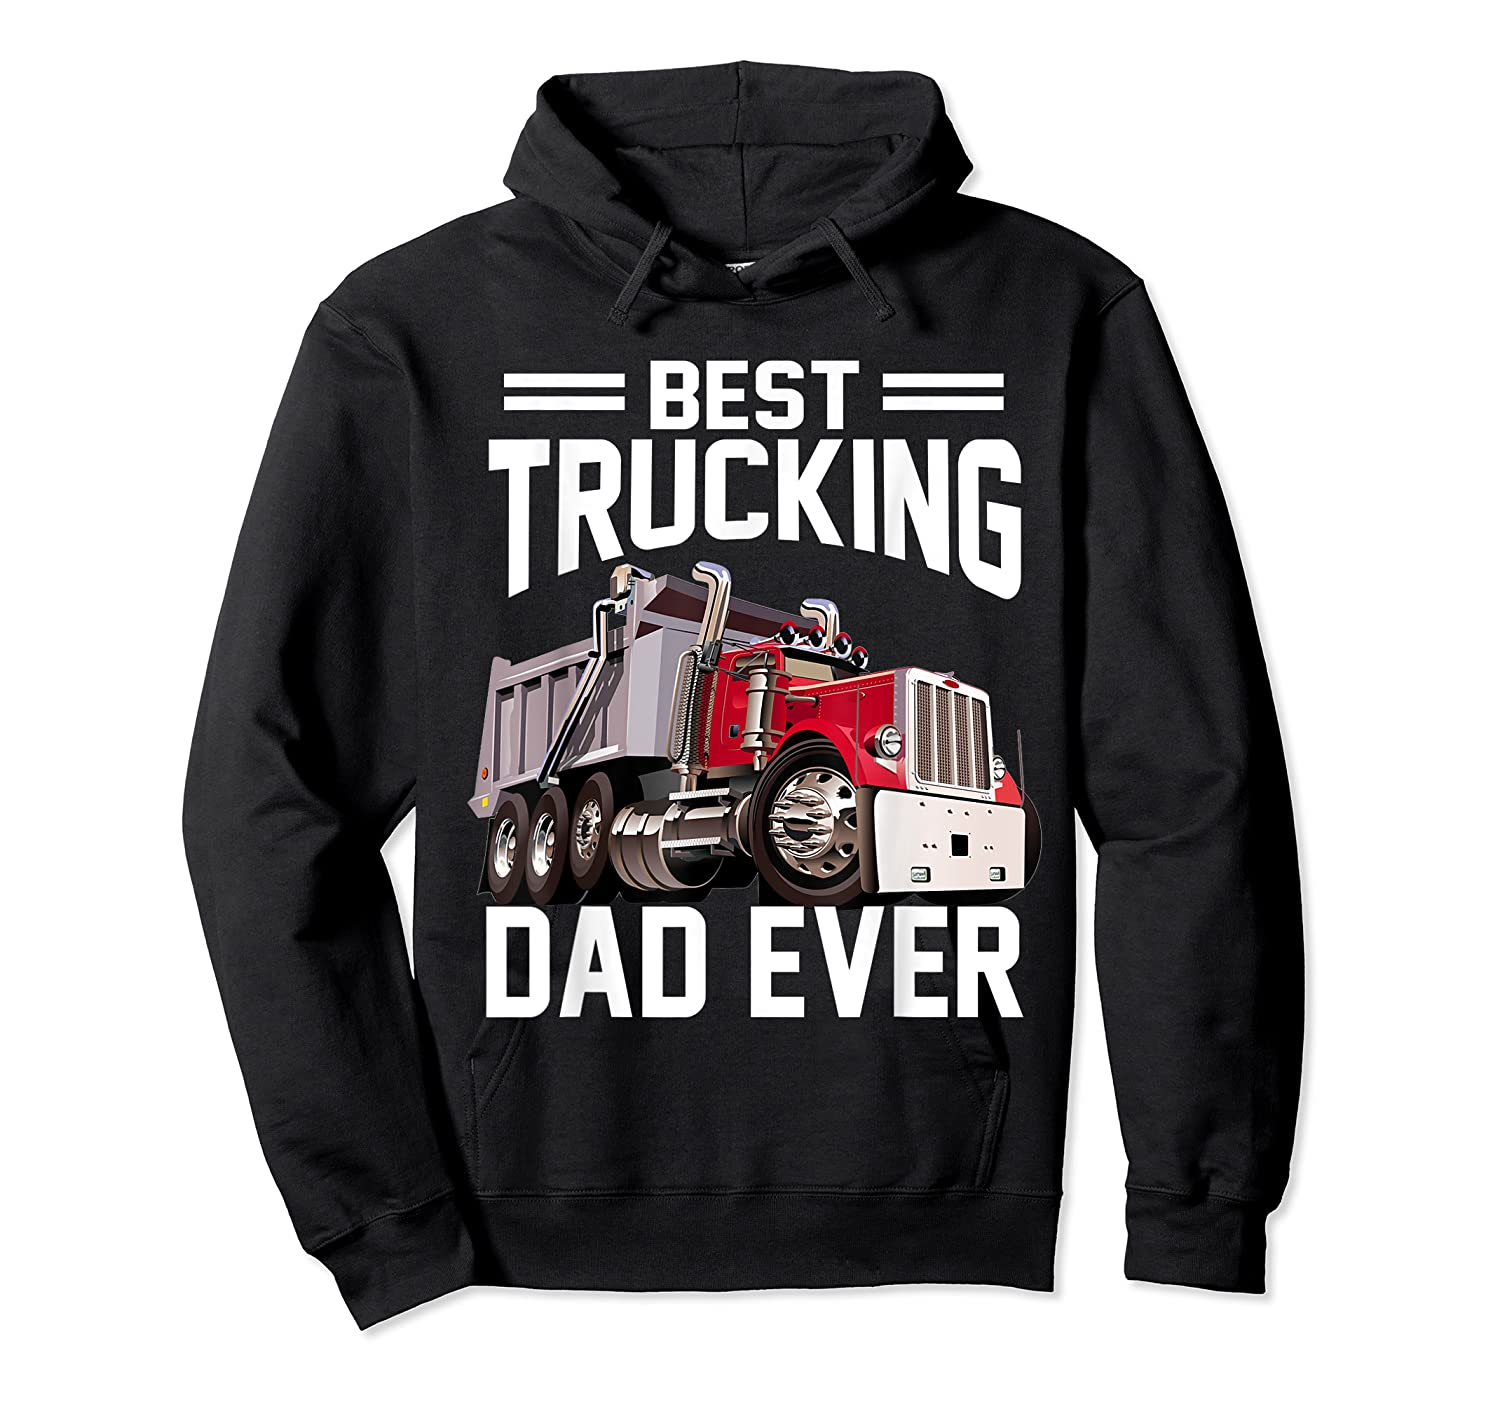 Best Trucking Dad Ever Father's Day Gift Shirts Unisex Pullover Hoodie